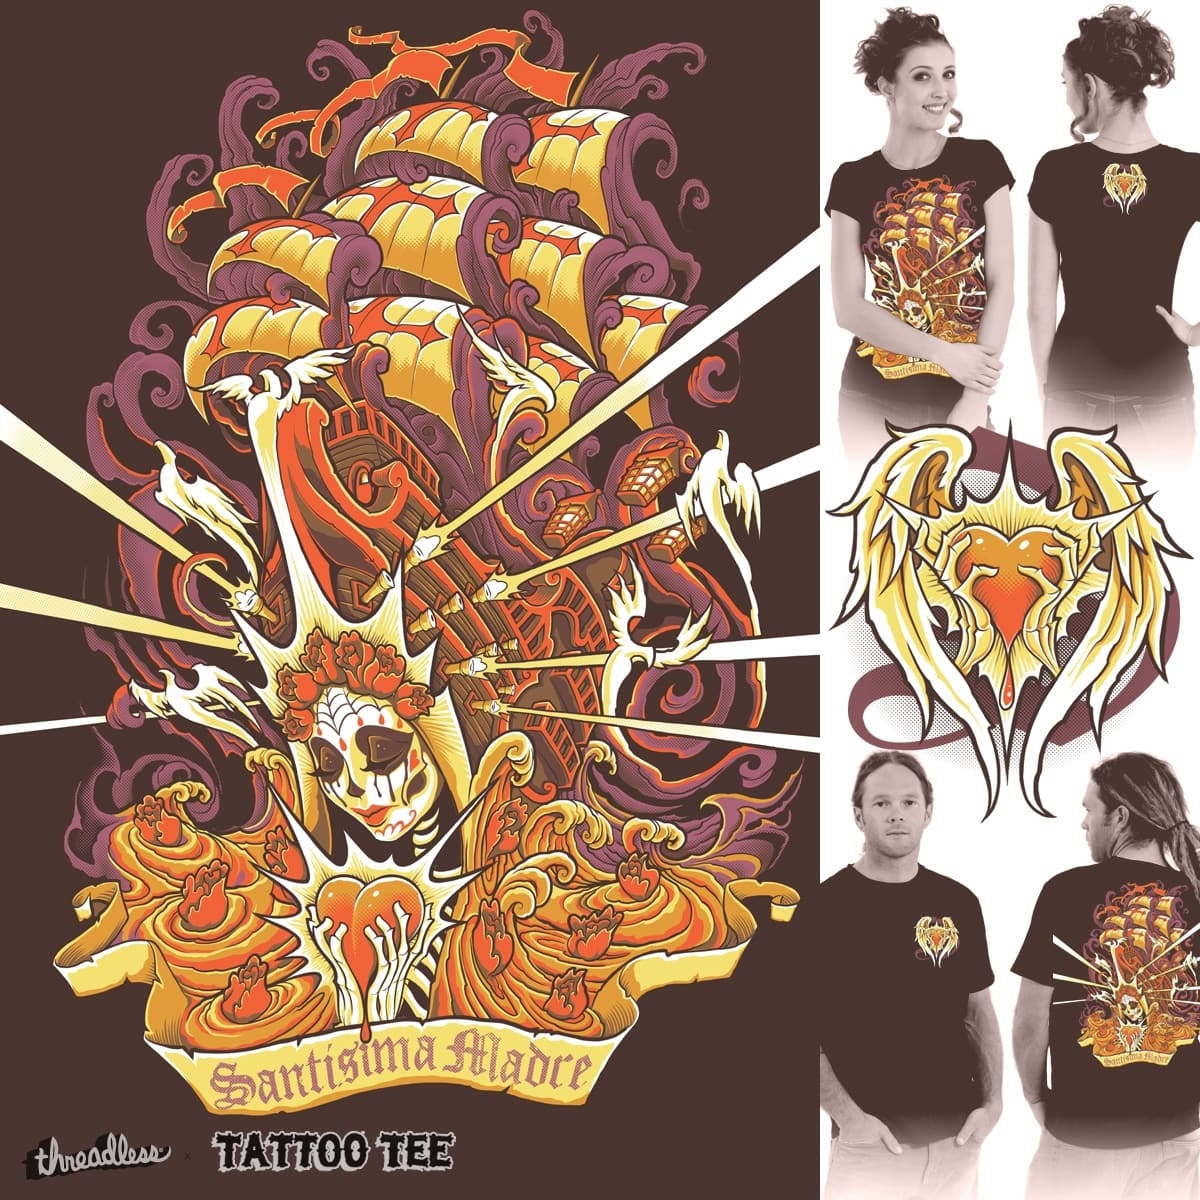 Santisima Madre by Jehsee on Threadless